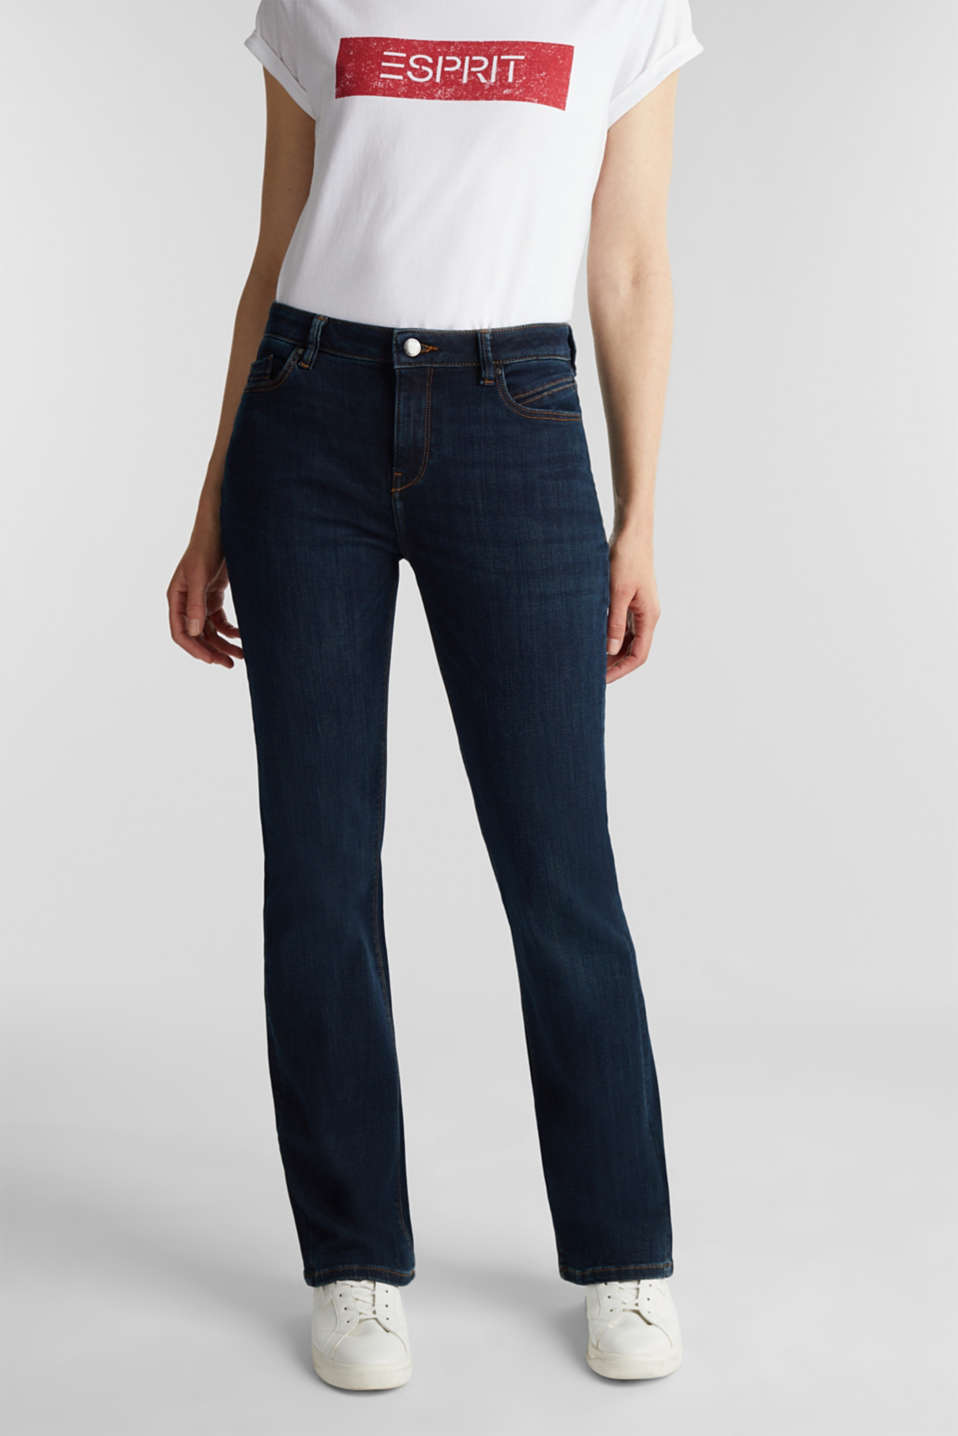 Esprit - Jeans basic in denim scuro